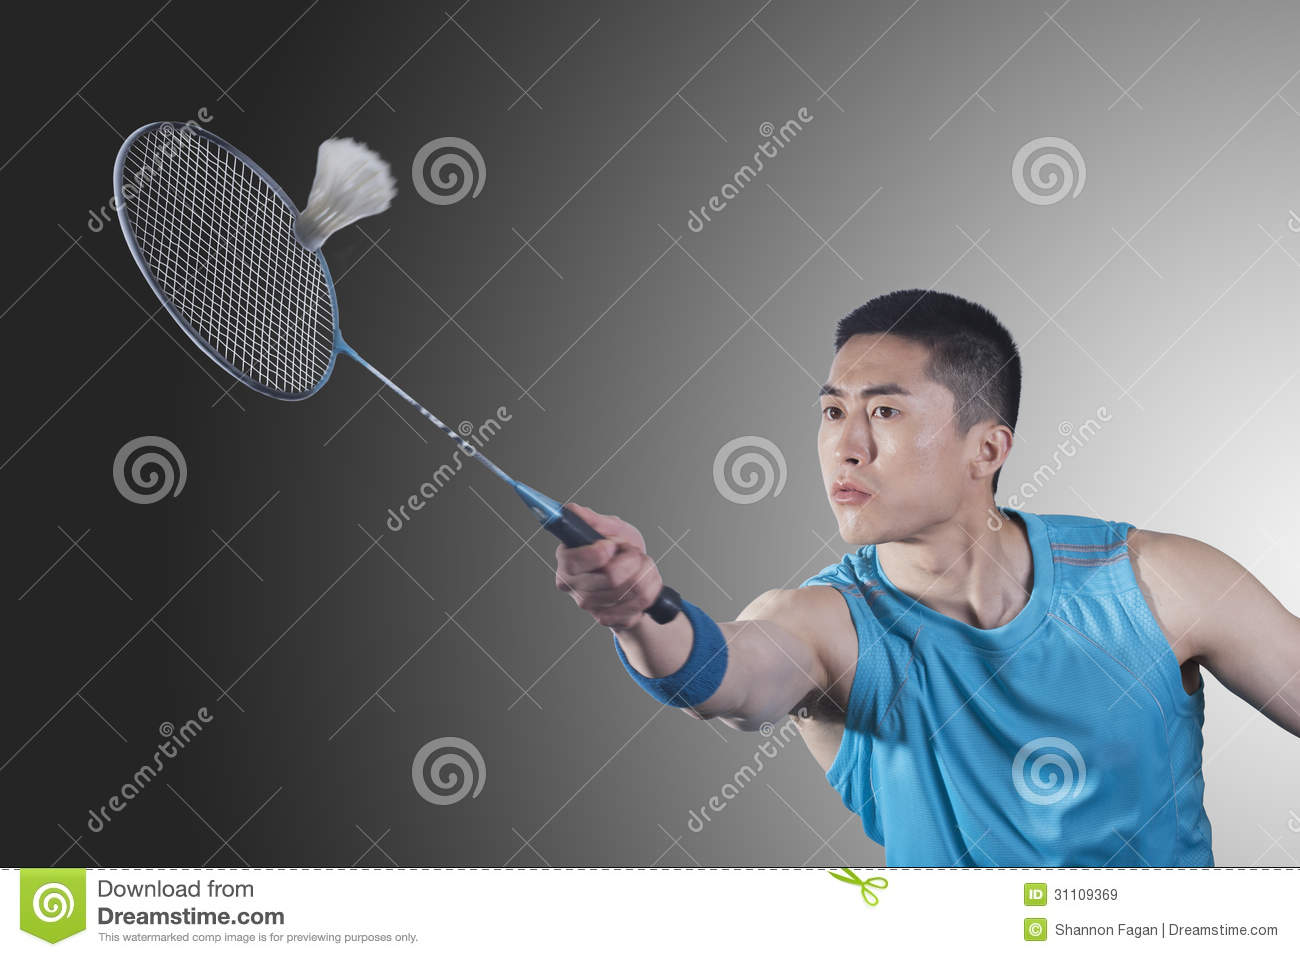 Concentrated Young man playing badminton, hitting